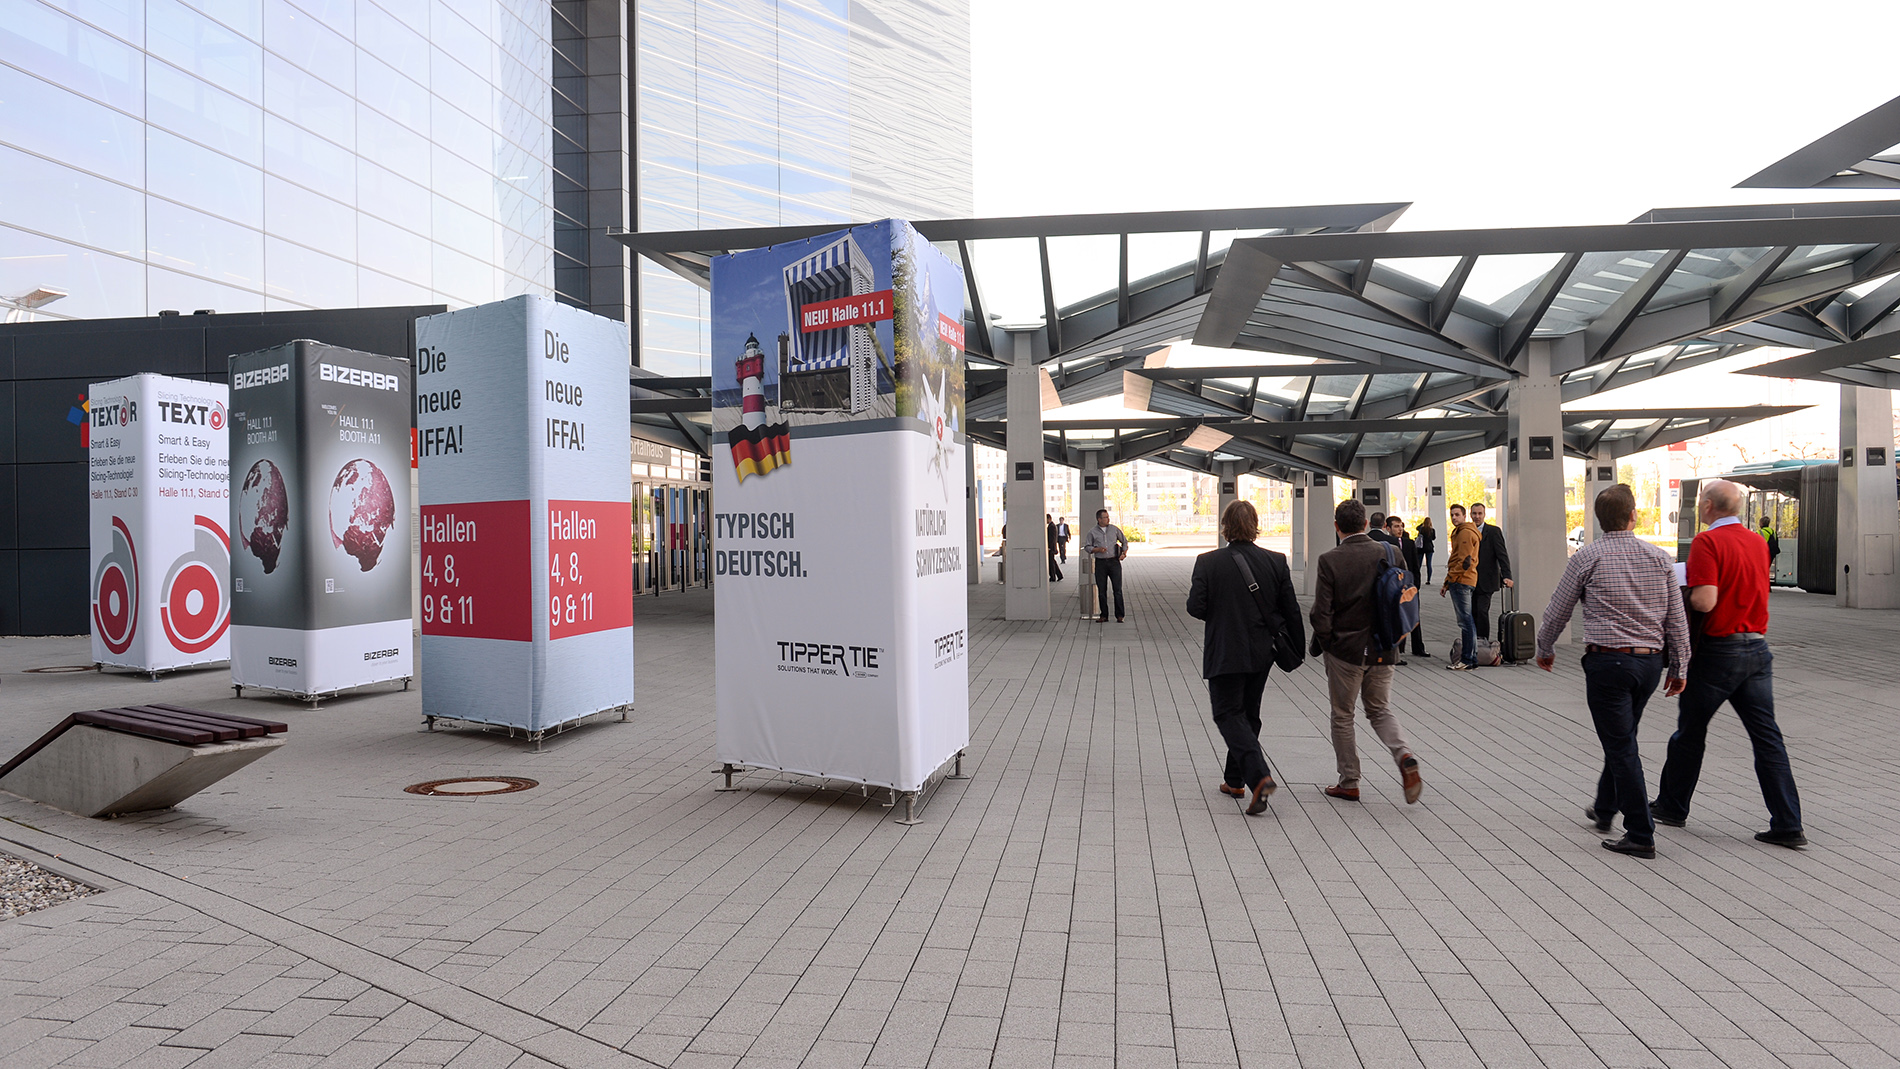 Advertising on the outside of Messe Frankfurt: advertising towers in front of the entrance